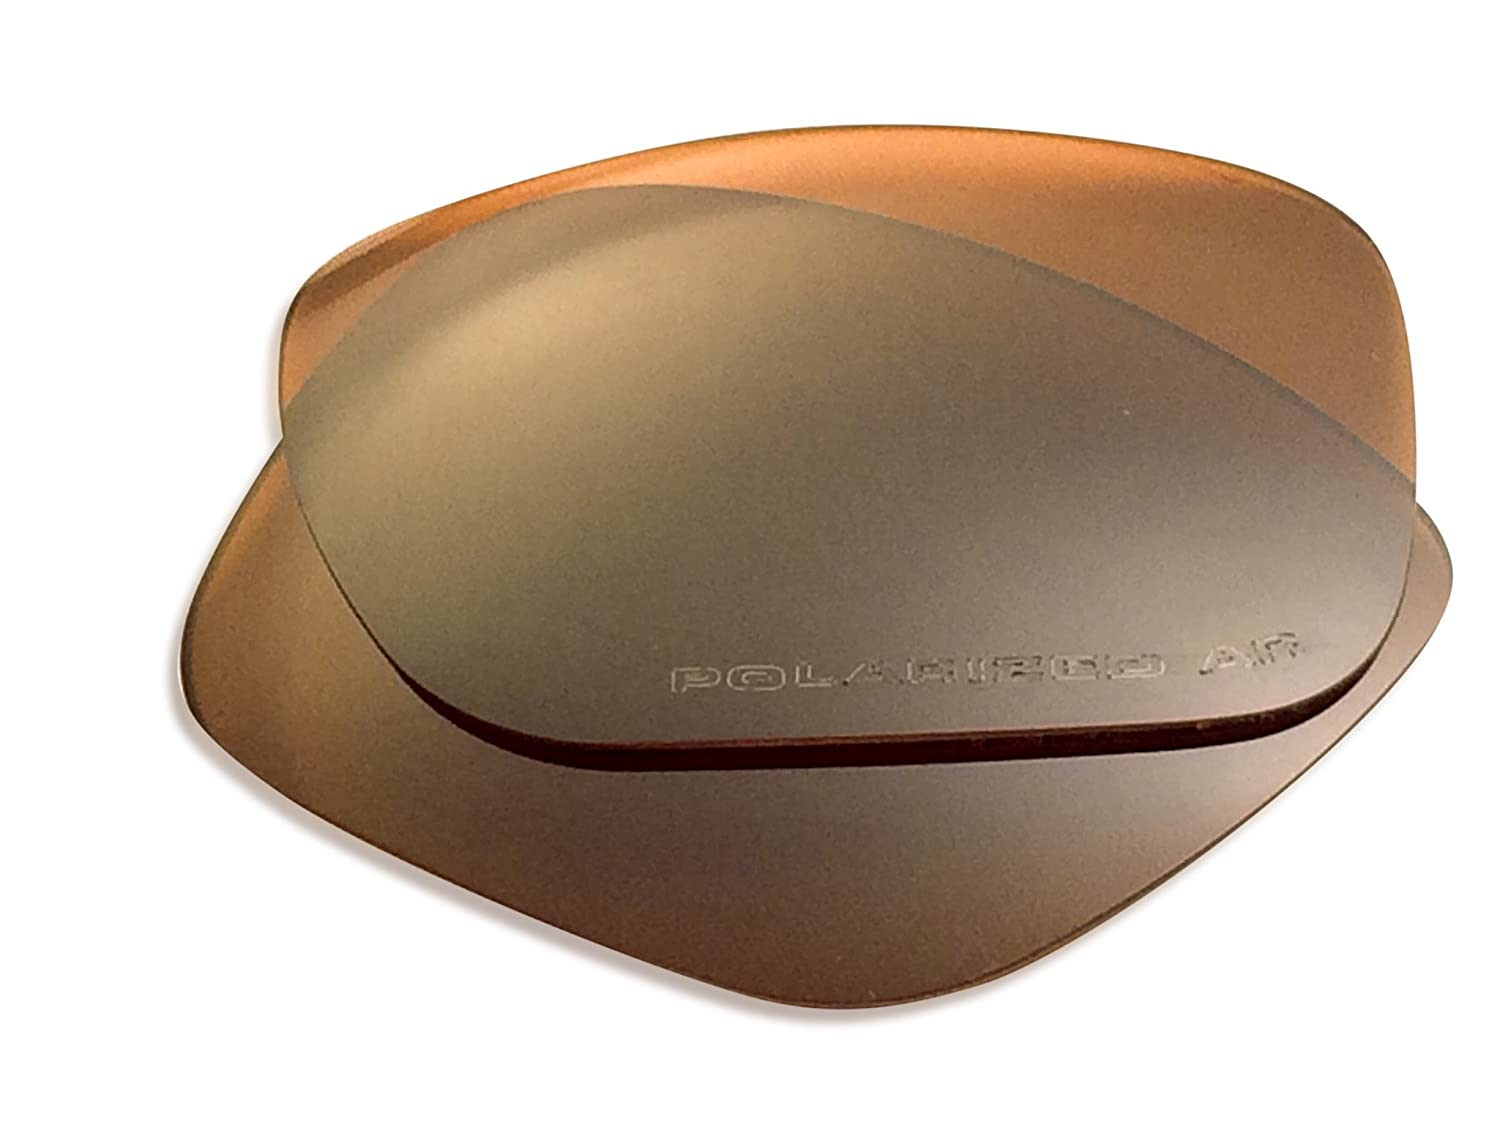 e4410c403e23 Amazon.com: Oakley Holbrook Replacement Lenses (Brown) - Polarized, 1.4 mm  Thick, AR Coated, Added UV Protection, Fits Perfectly, for Men & Women:  Shoes